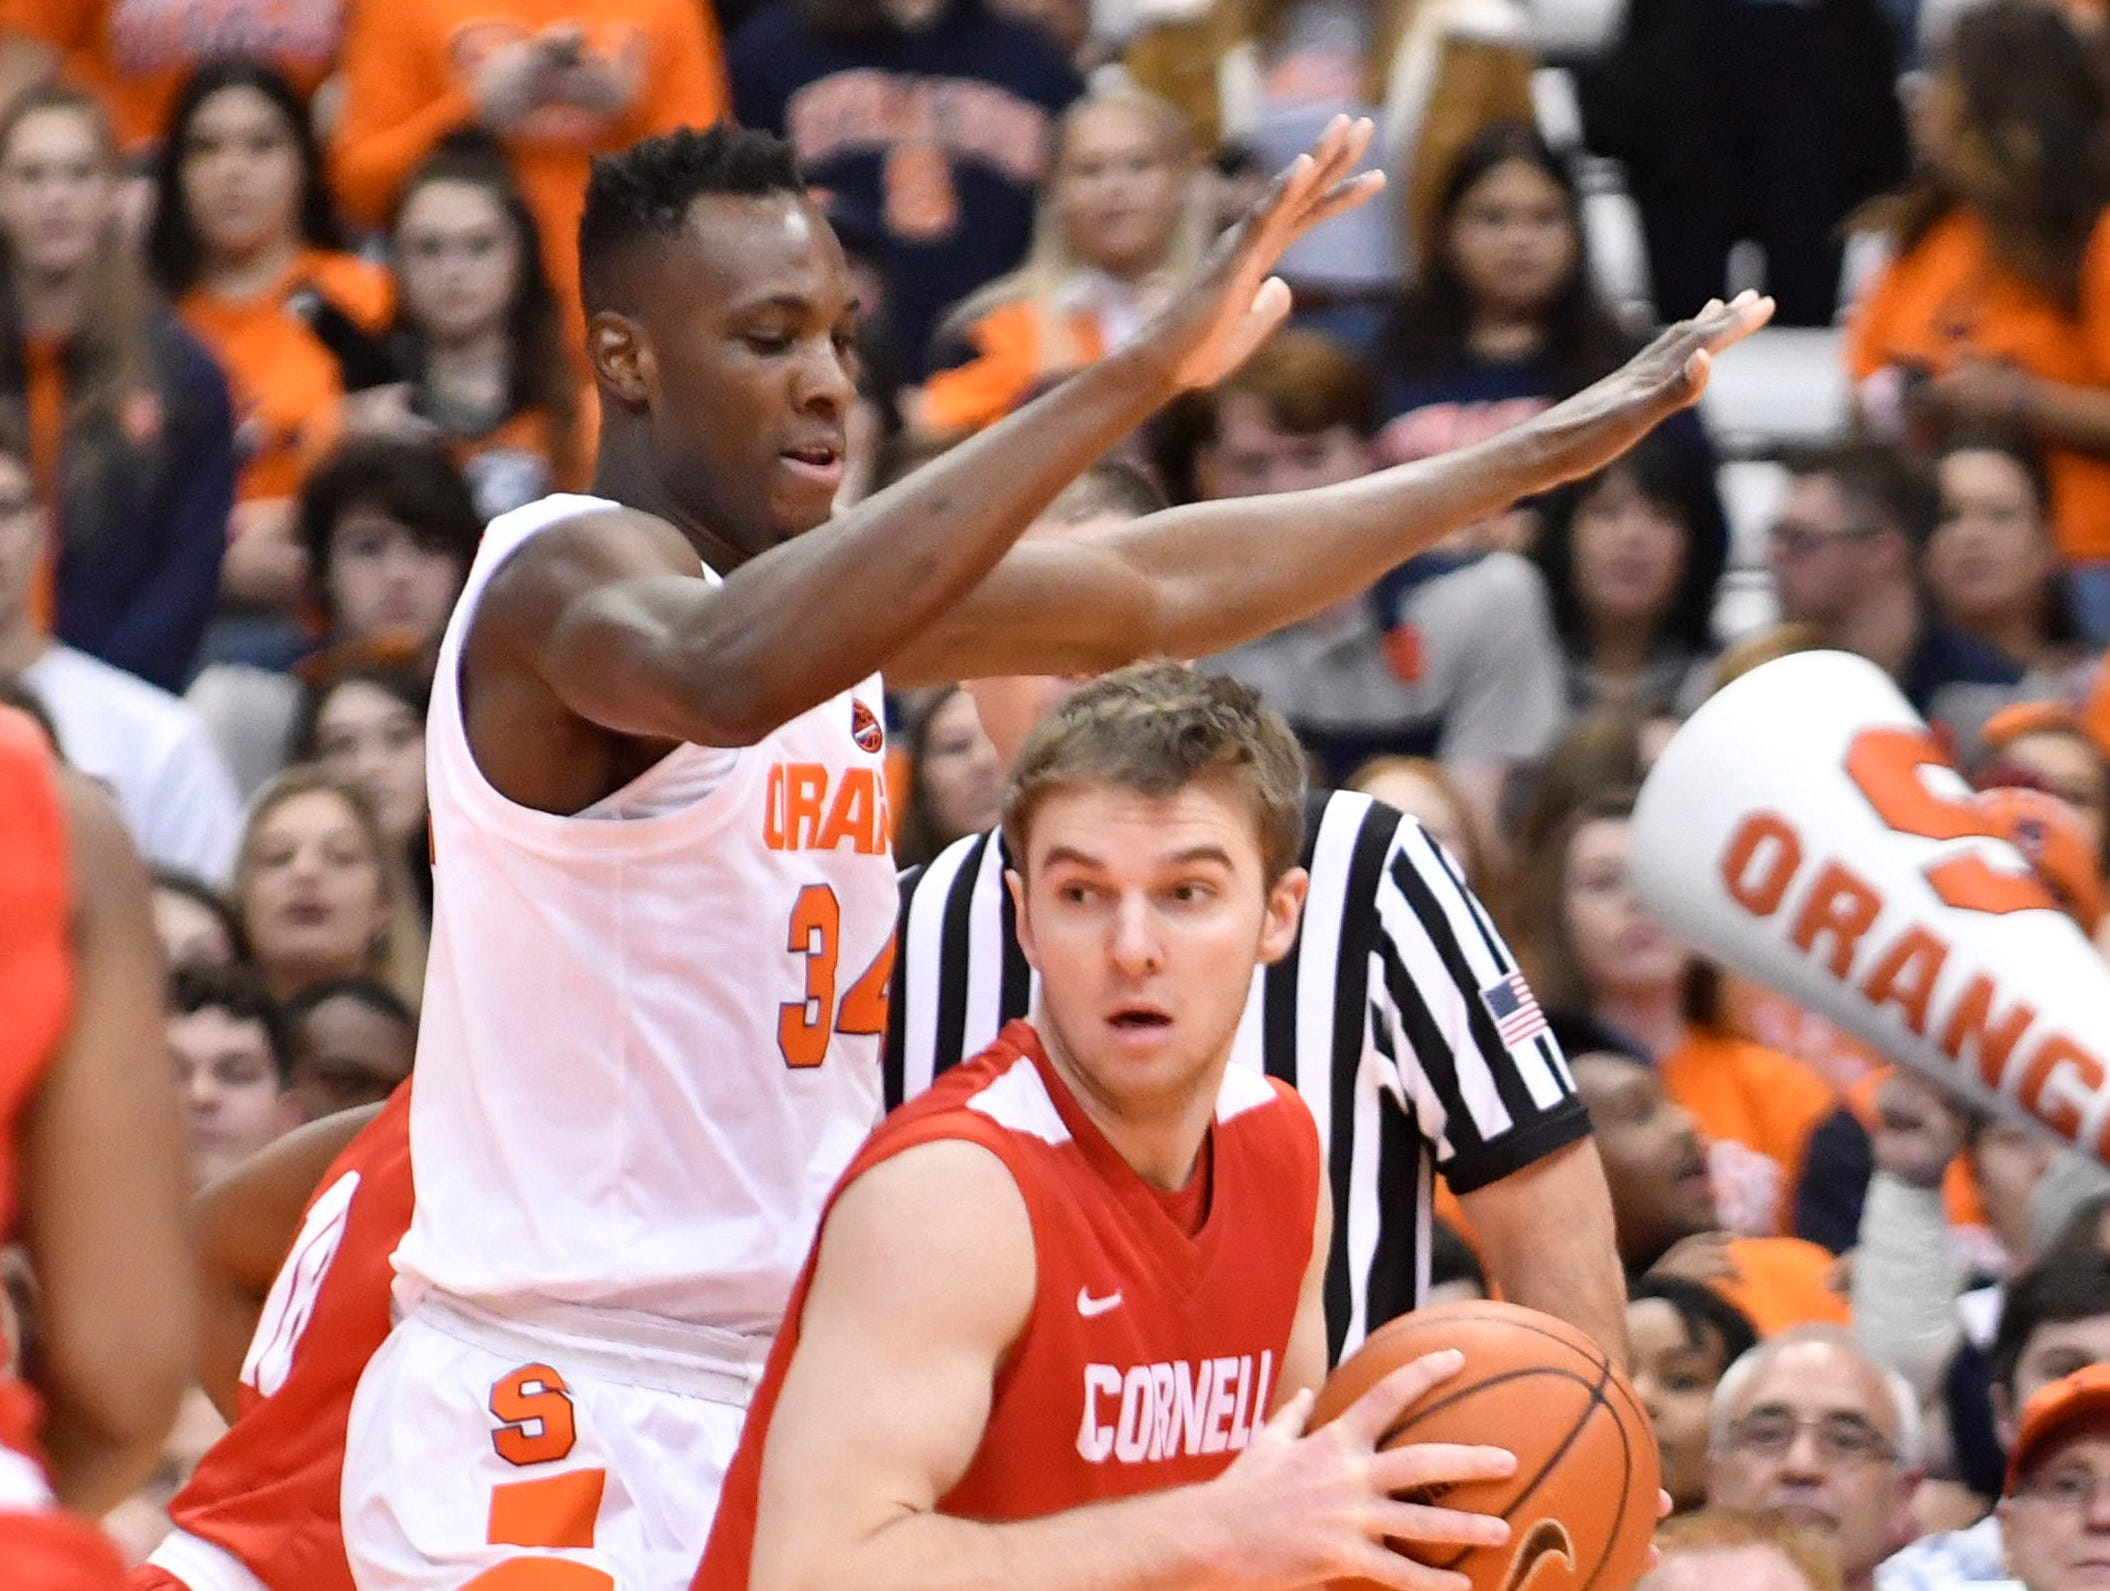 Dec 1, 2018; Syracuse, NY, USA; Cornell Big Red forward Josh Warren (22) is closely guarded by Syracuse Orange forward Bourama Sidibe (34) during the first half at the Carrier Dome. Mandatory Credit: Mark Konezny-USA TODAY Sports